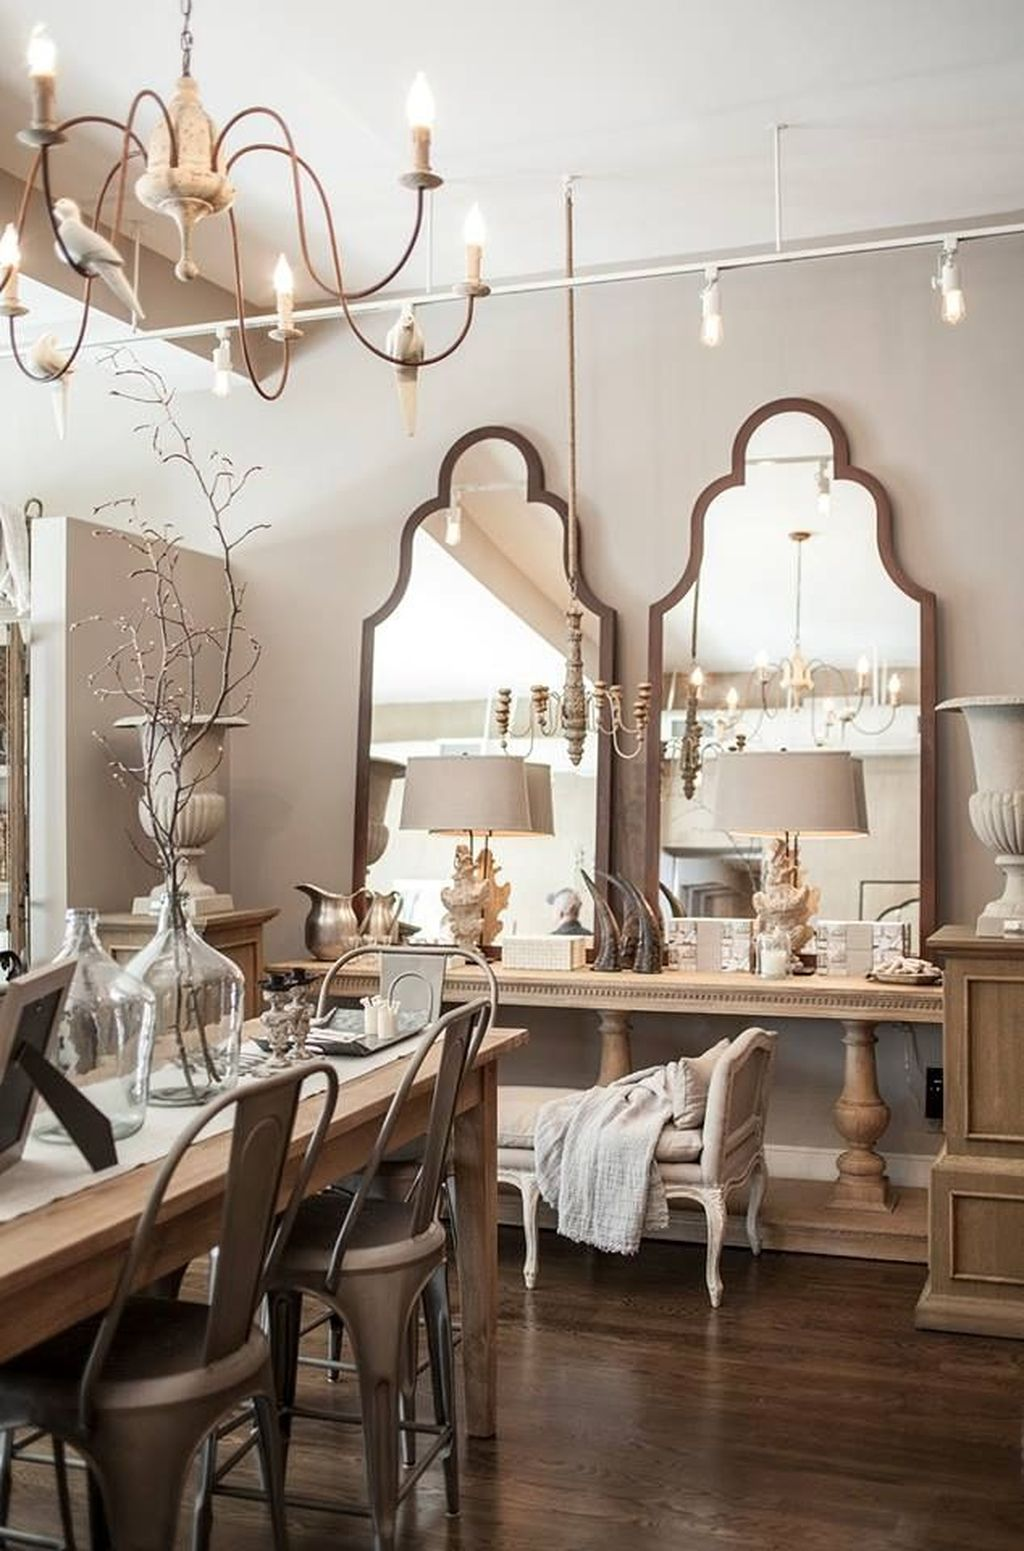 Amazing Wall Mirror Design Ideas For Dining Room Decor 22